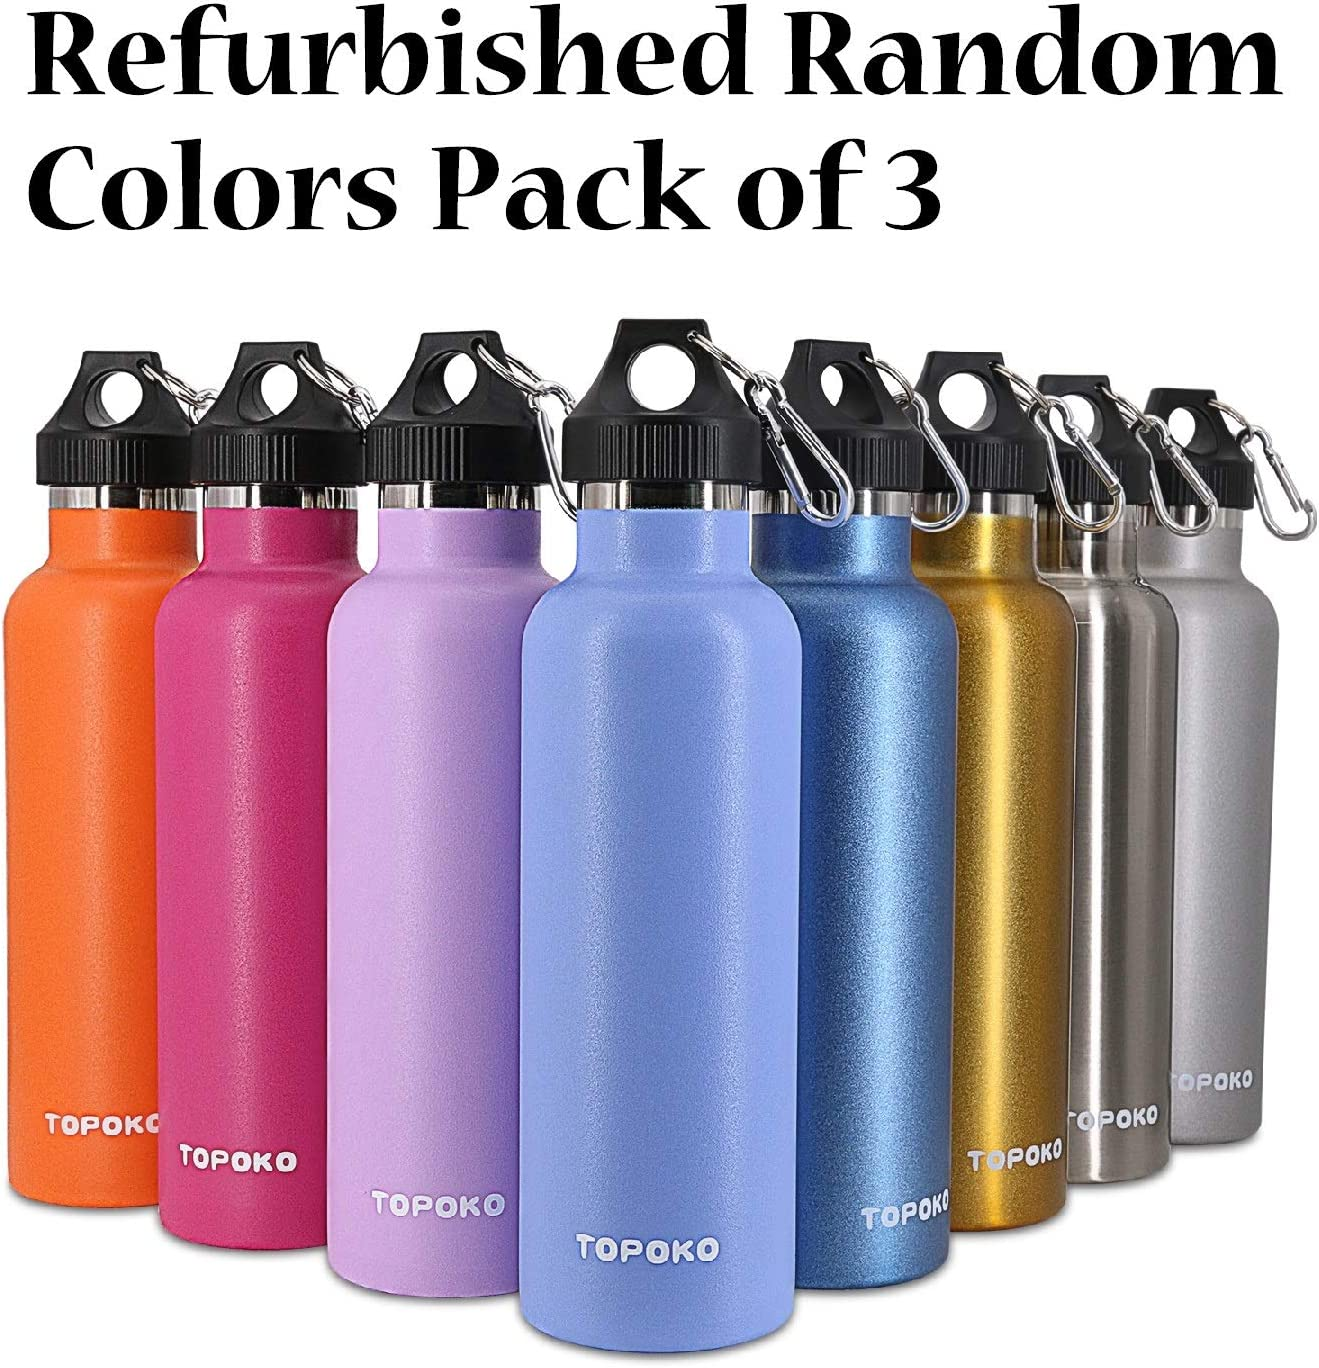 TOPOKO Refurbished 25 OZ Double Wall Insulated Water Bottle. Cleaned and Sanitized with Minor Cosmetic Defection and No Original Packaging. Random Colors Pack of 3 81zwpkMSTsL